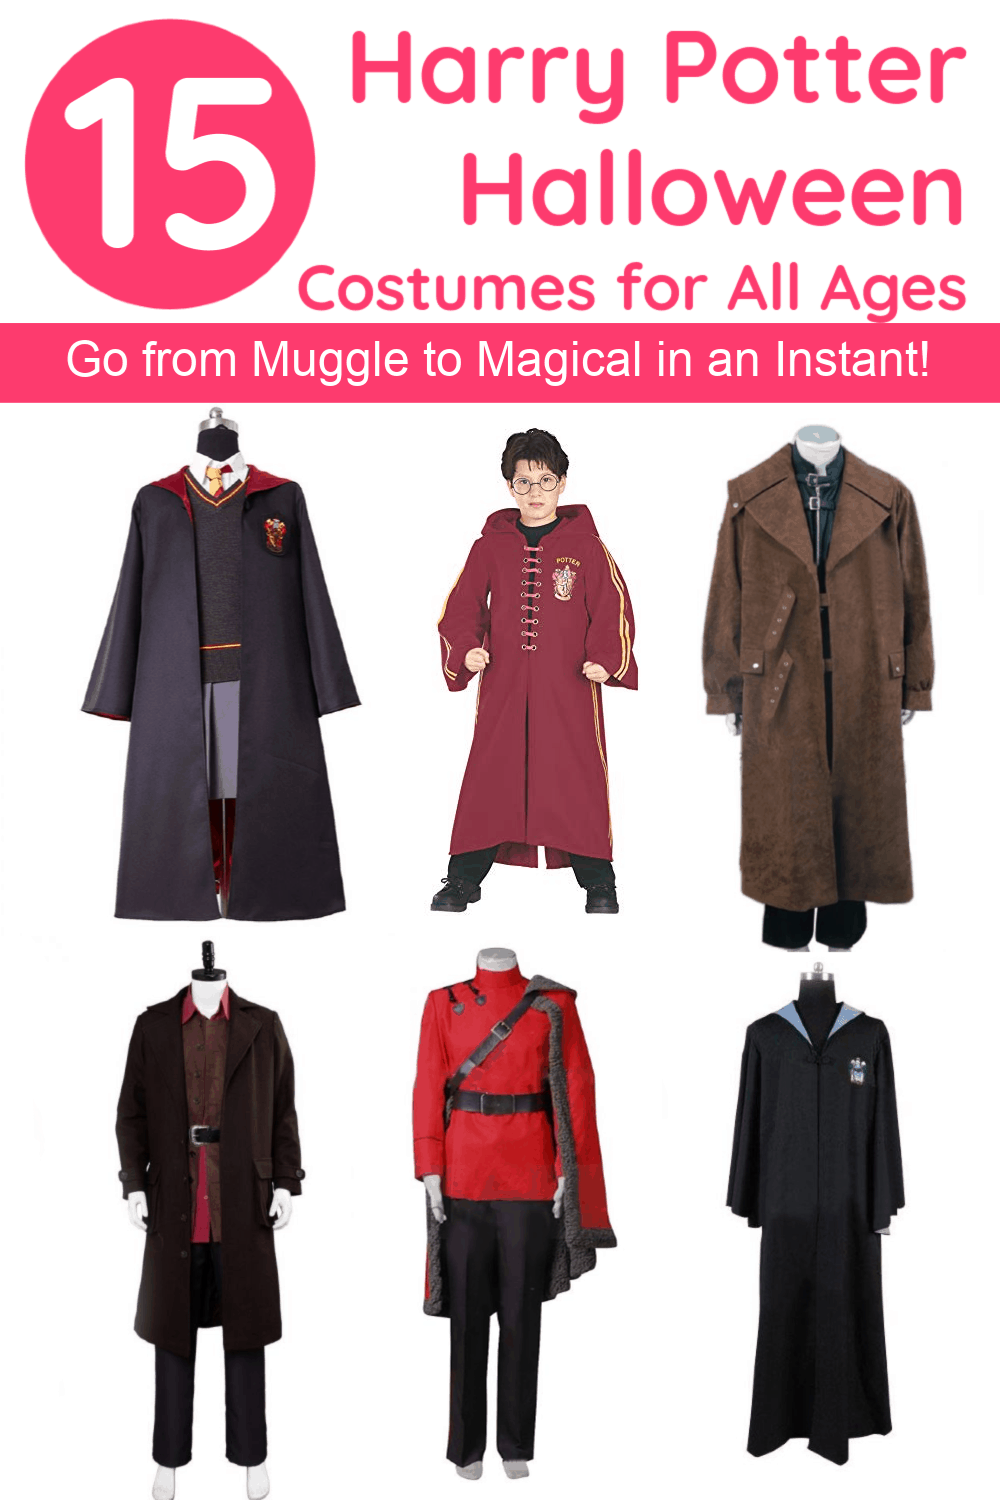 Go from Muggle to magical in an instant with these brilliant Harry Potter Halloween costumes, including some super high-quality cosplay costumes that will last a lifetime!